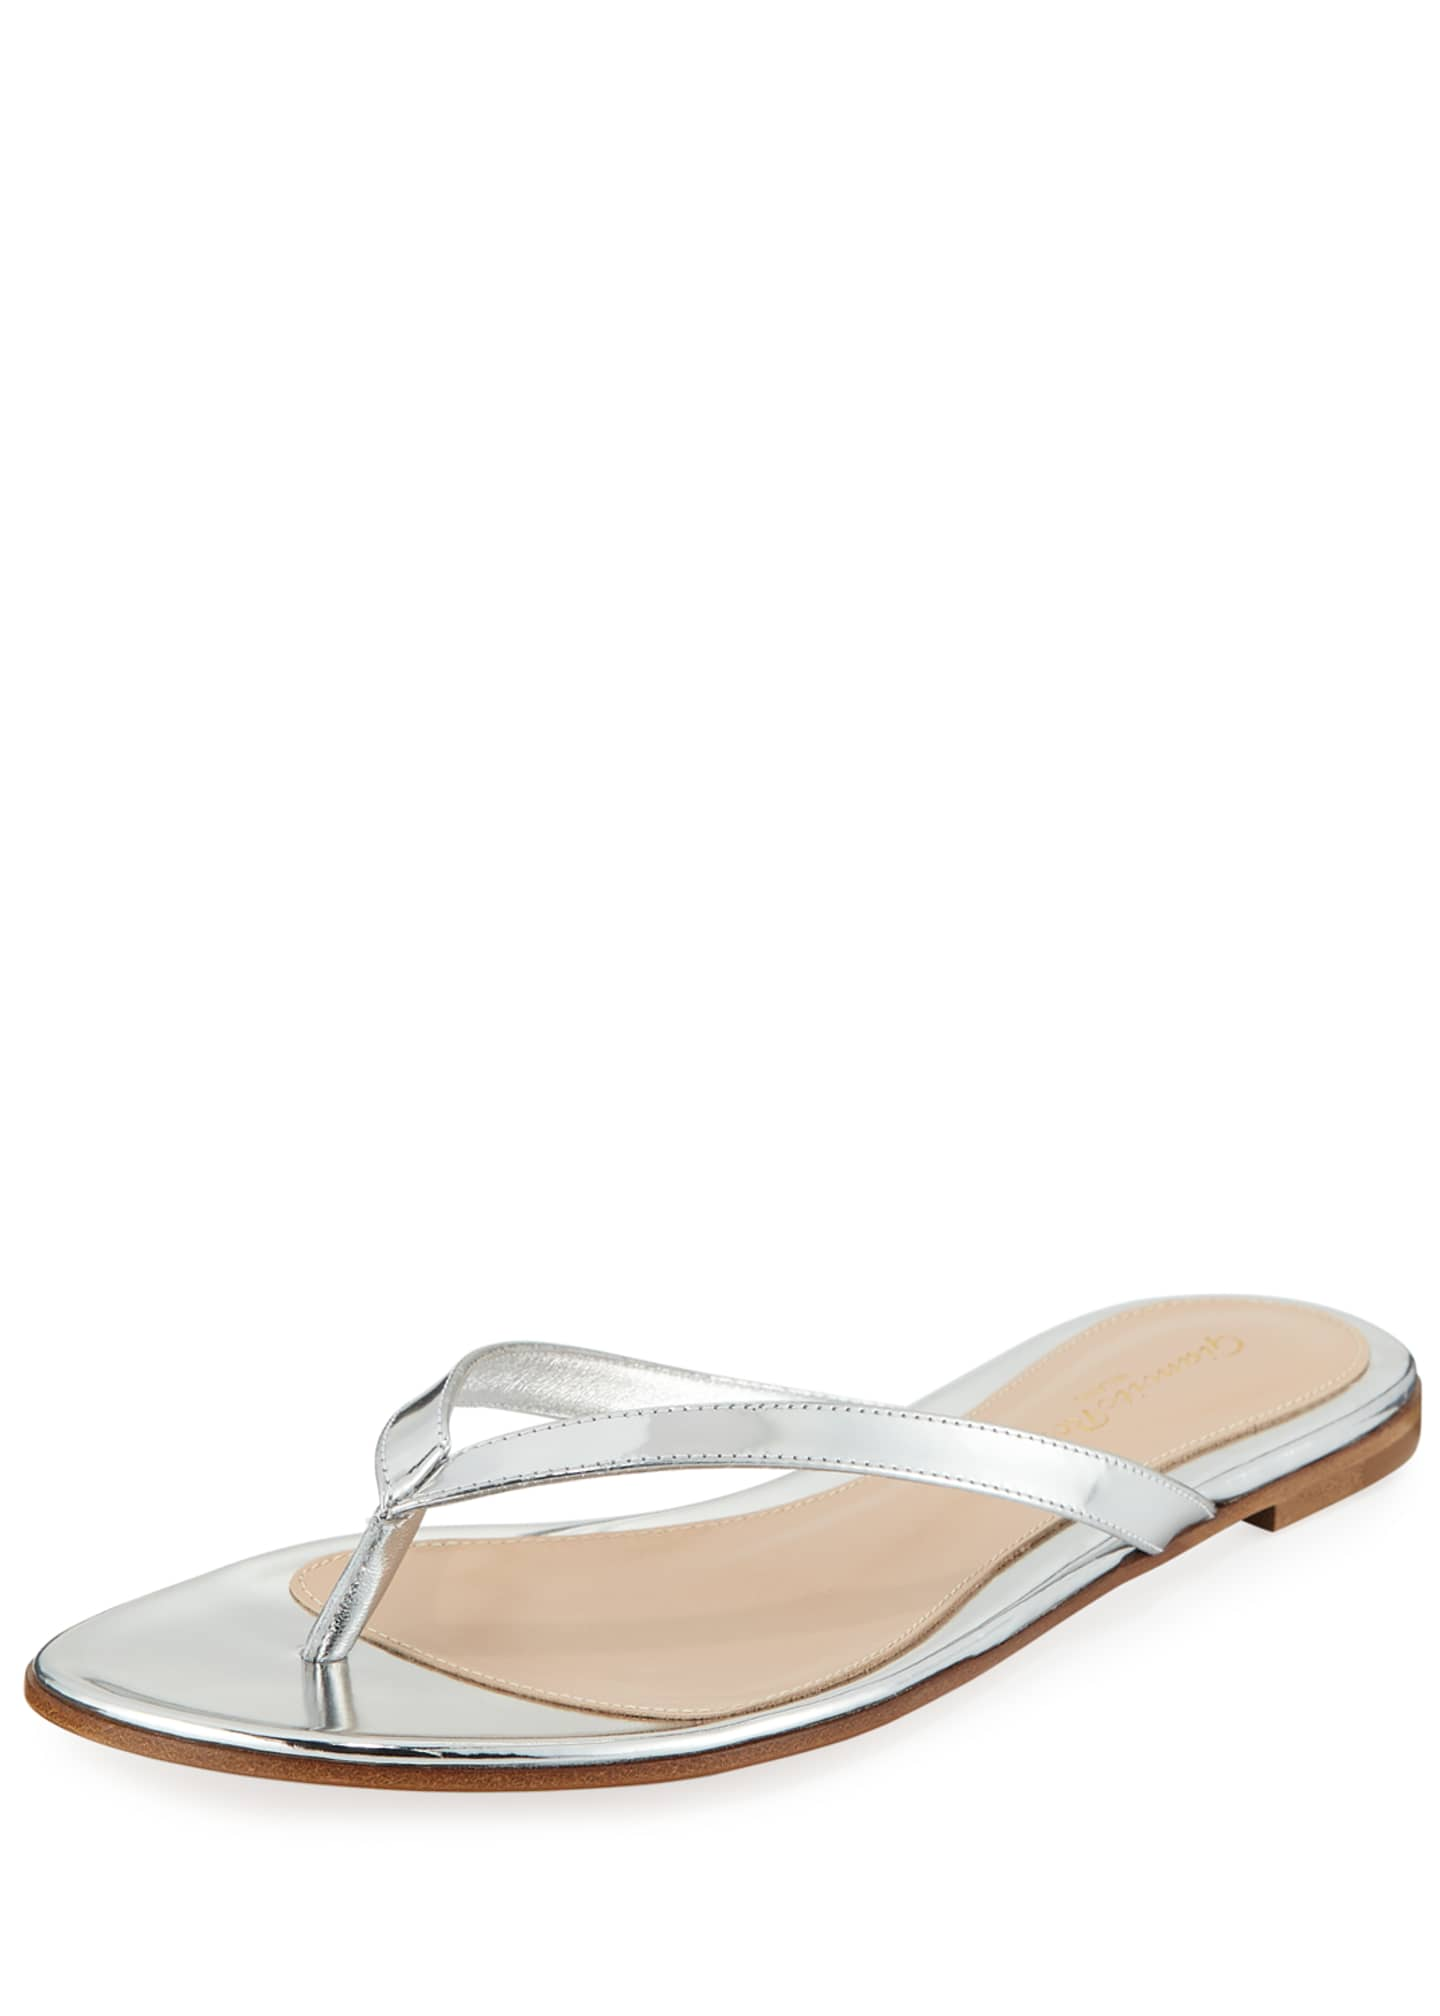 Gianvito Rossi Metallic Leather Thong Sandals with Crystal